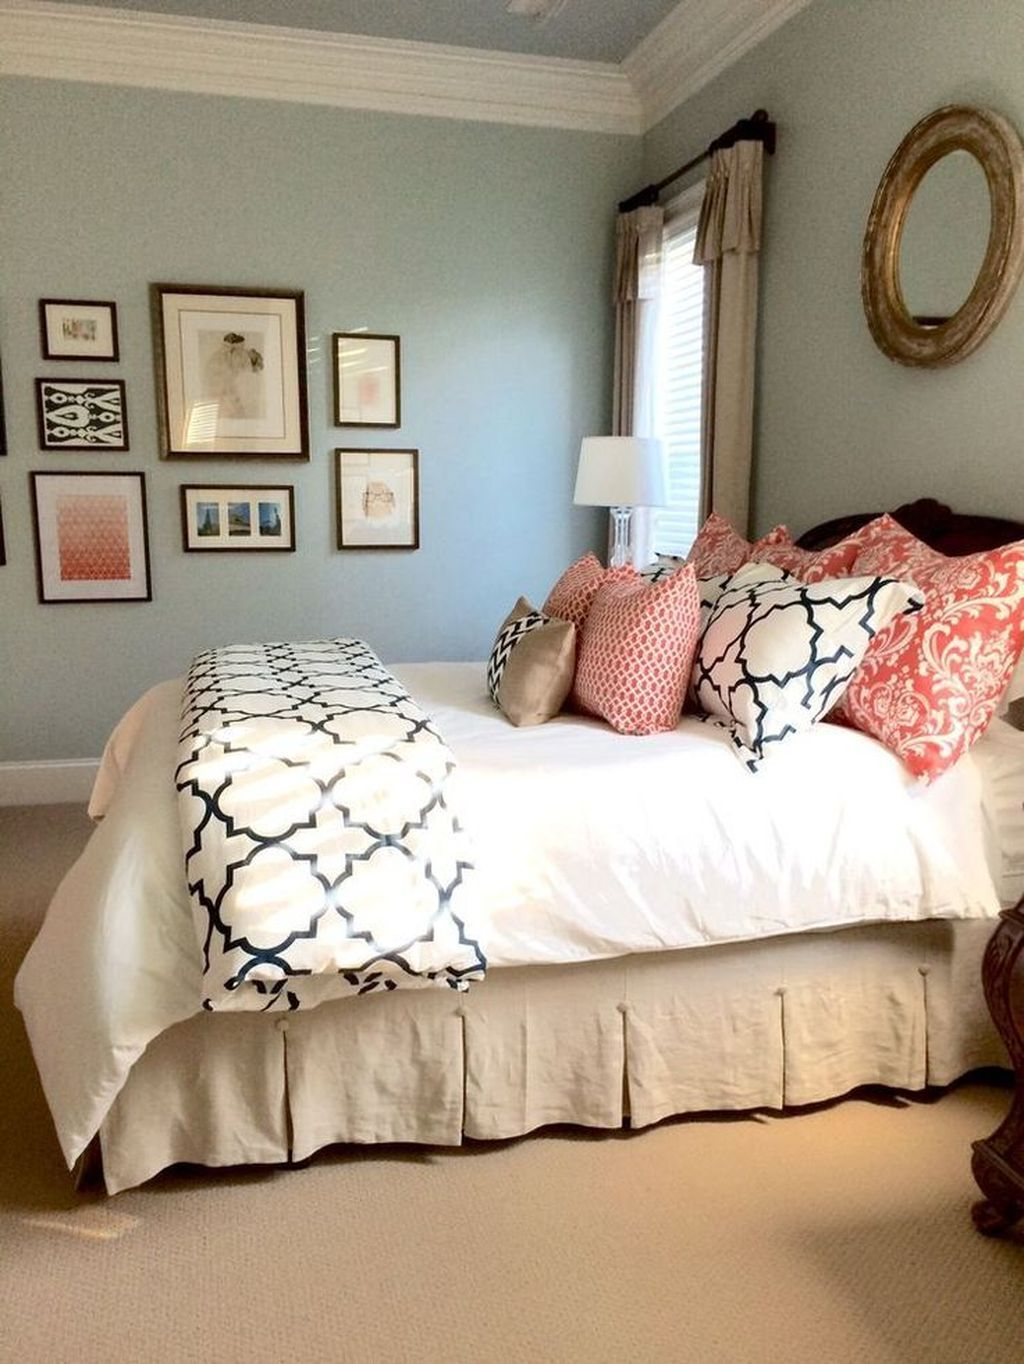 Awesome 40 Simple But Cute Feminine Bedroom Decoration Ideas More At Dailypatio 2017 11 18